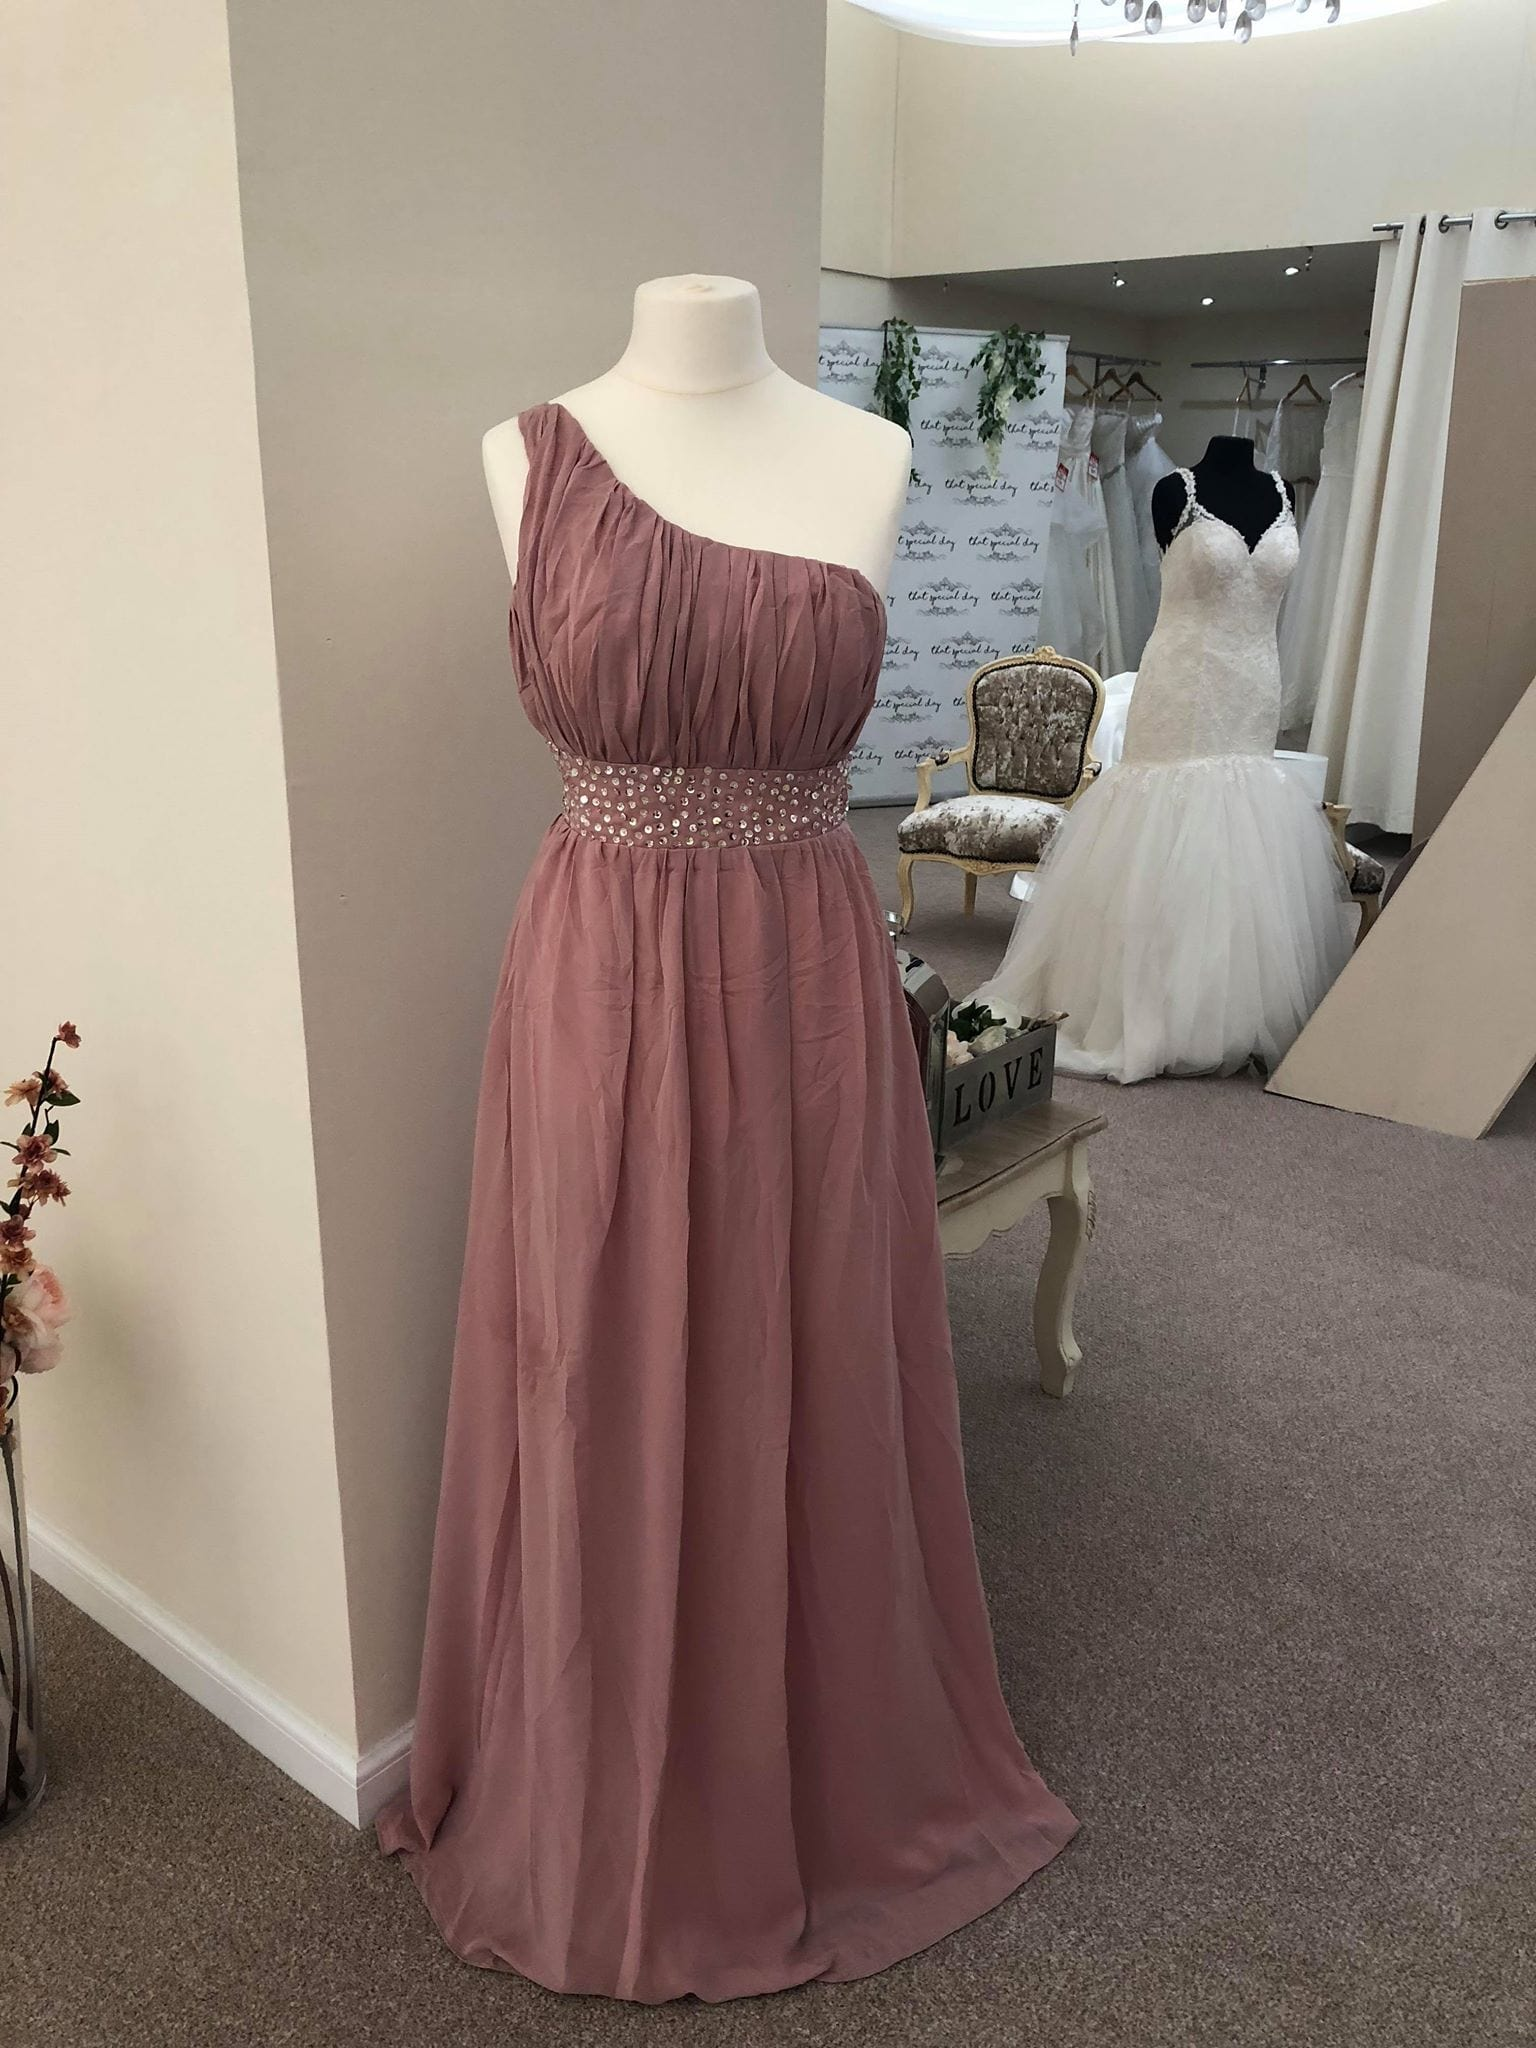 Leah One Shoulder Maxi Bridesmaid Dress With Sequin Belt - That Special Day Bridal Warehouse